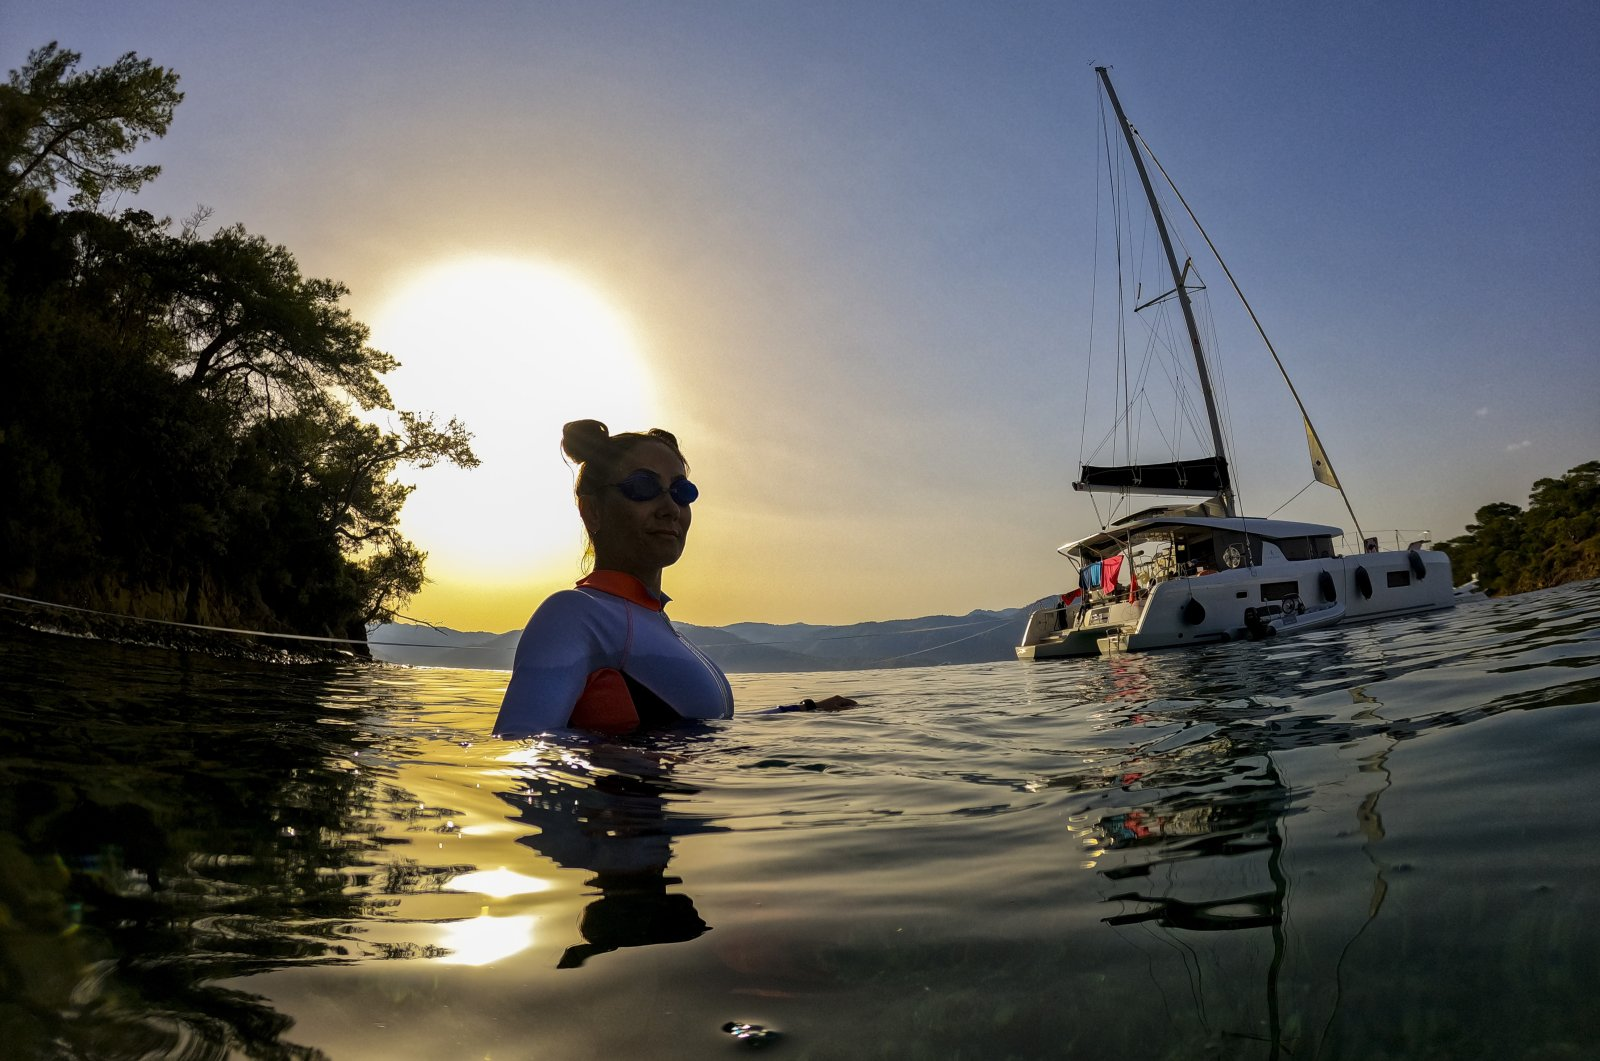 The bays of Göcek in the famed coastal city of Fethiye in the Muğla province are a favorite among freedivers. (AA Photo)